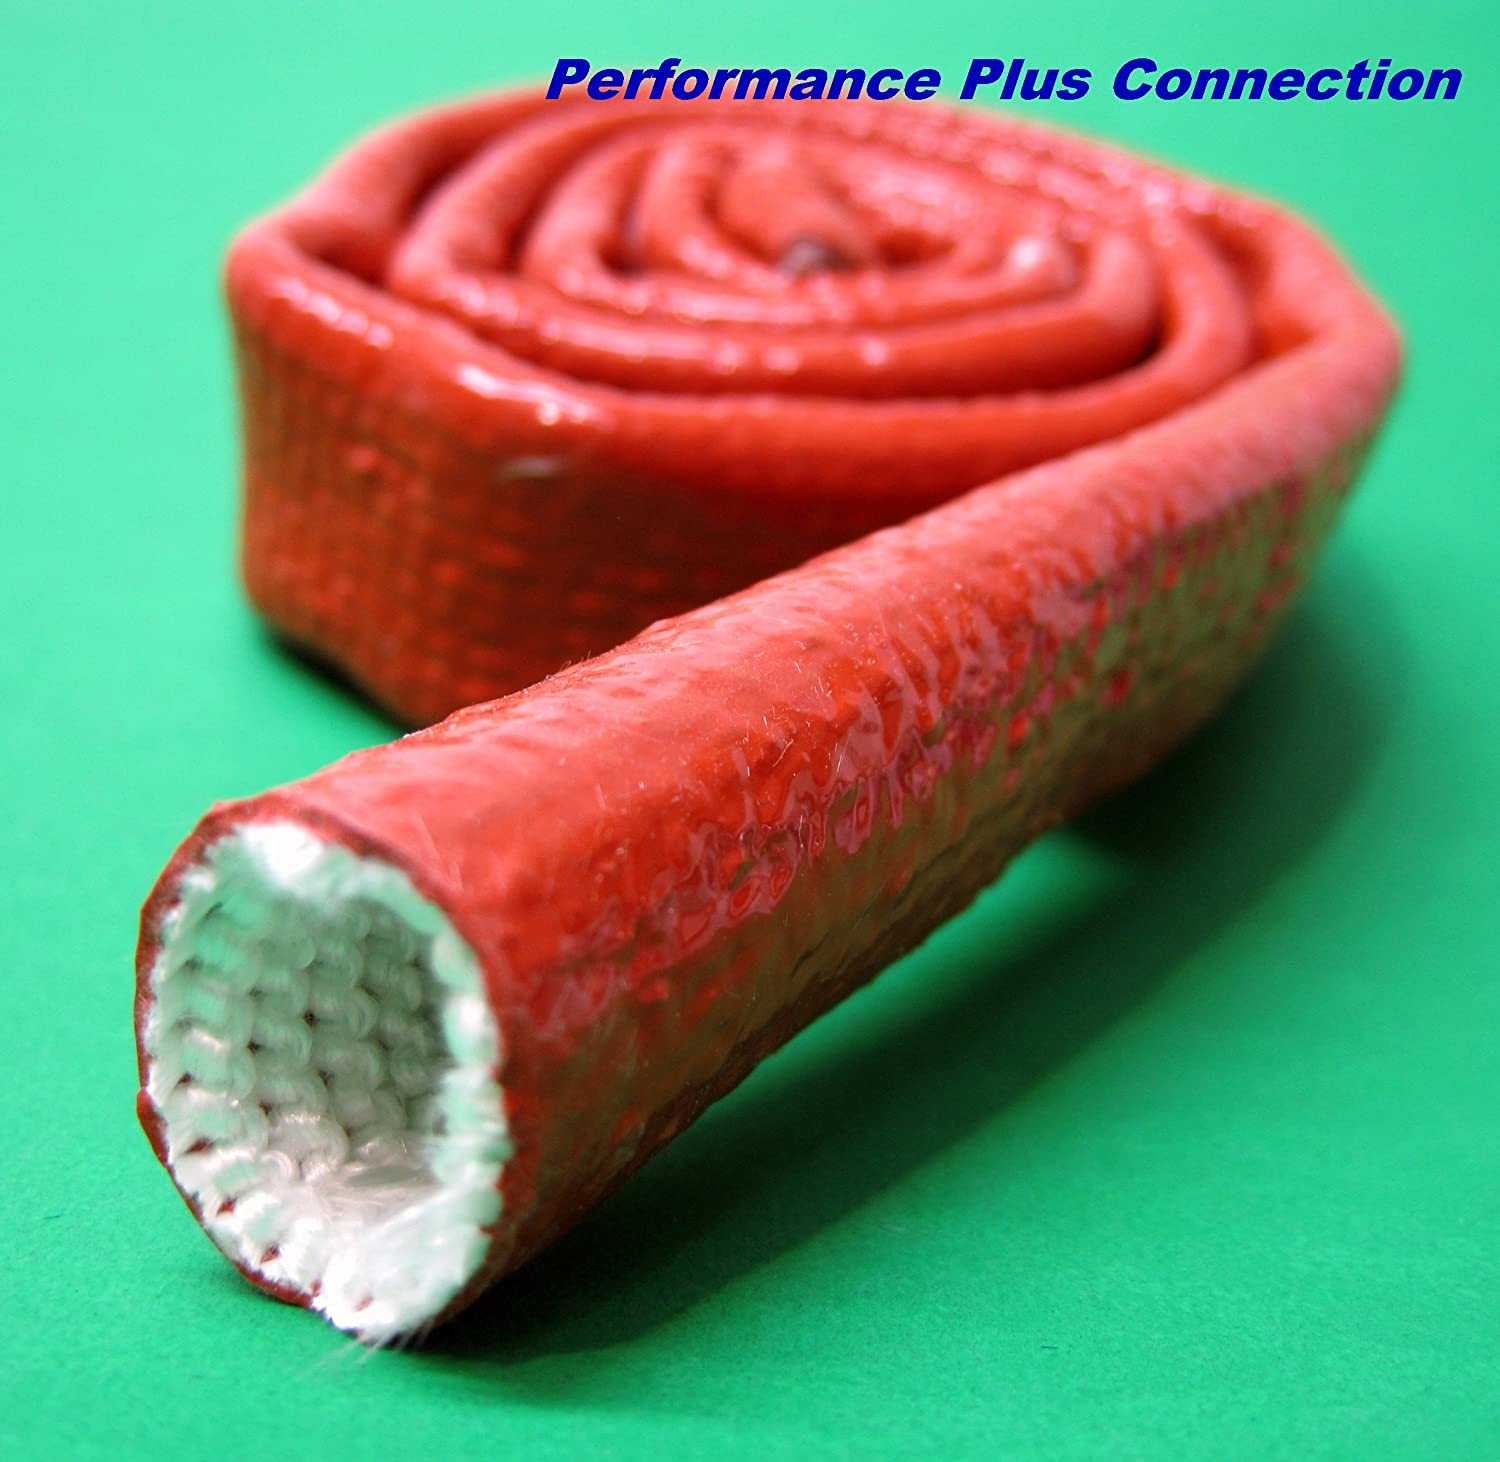 Vulcan Fire Sleeve, Fire Braid Flame Shield 5/8 X 3ft 10AN Performance Plus Connection